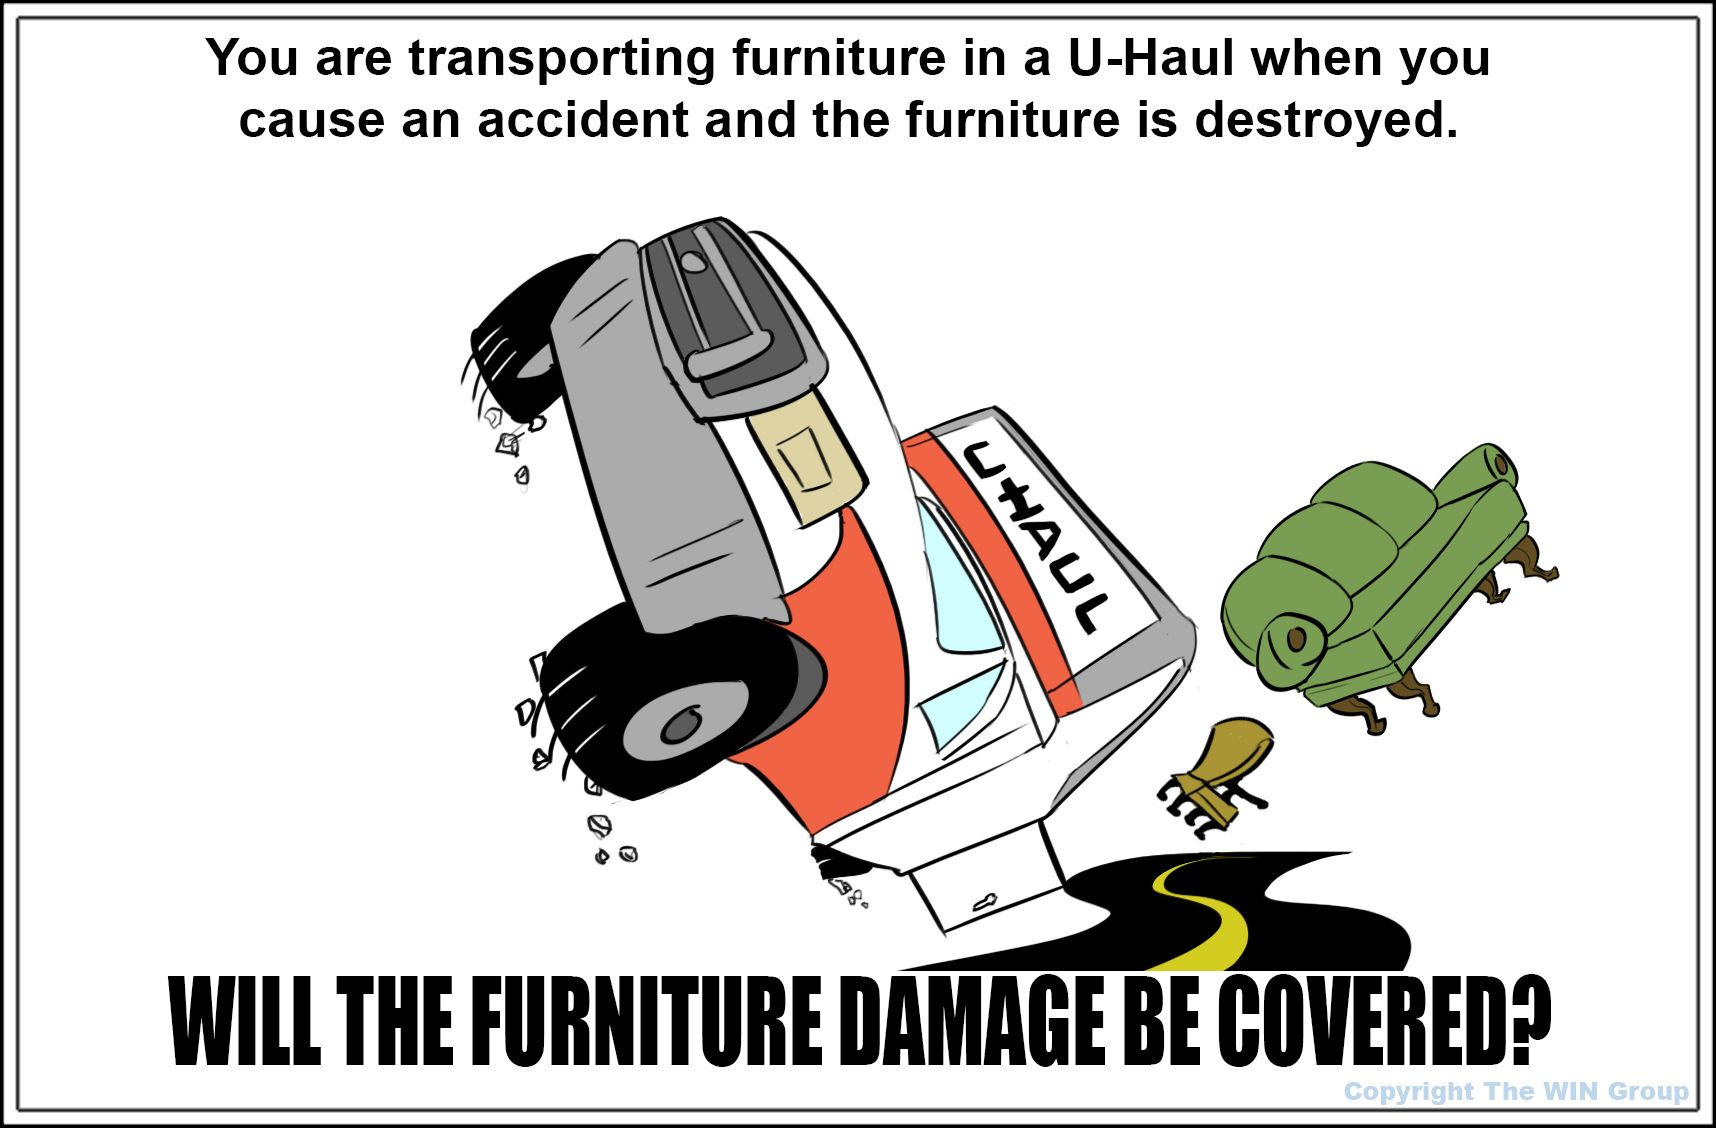 Insurance trivia While transporting your furniture in a U